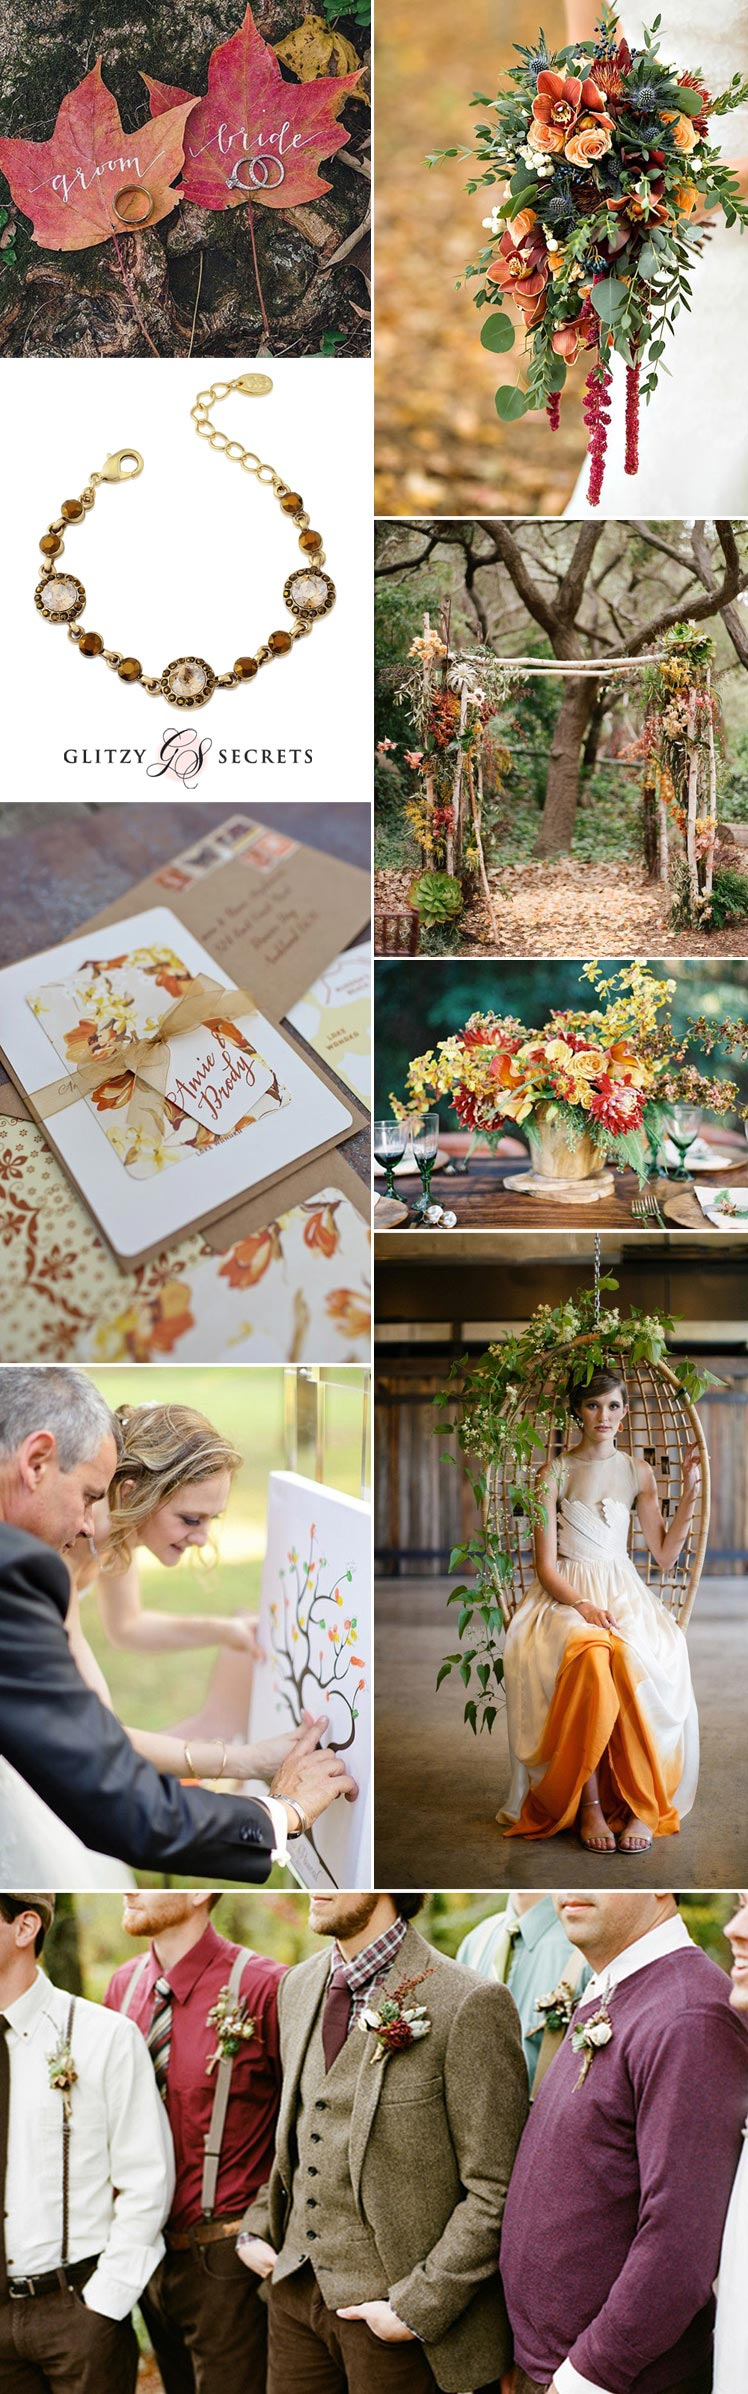 Stunning autumn wedding ideas in rust tones